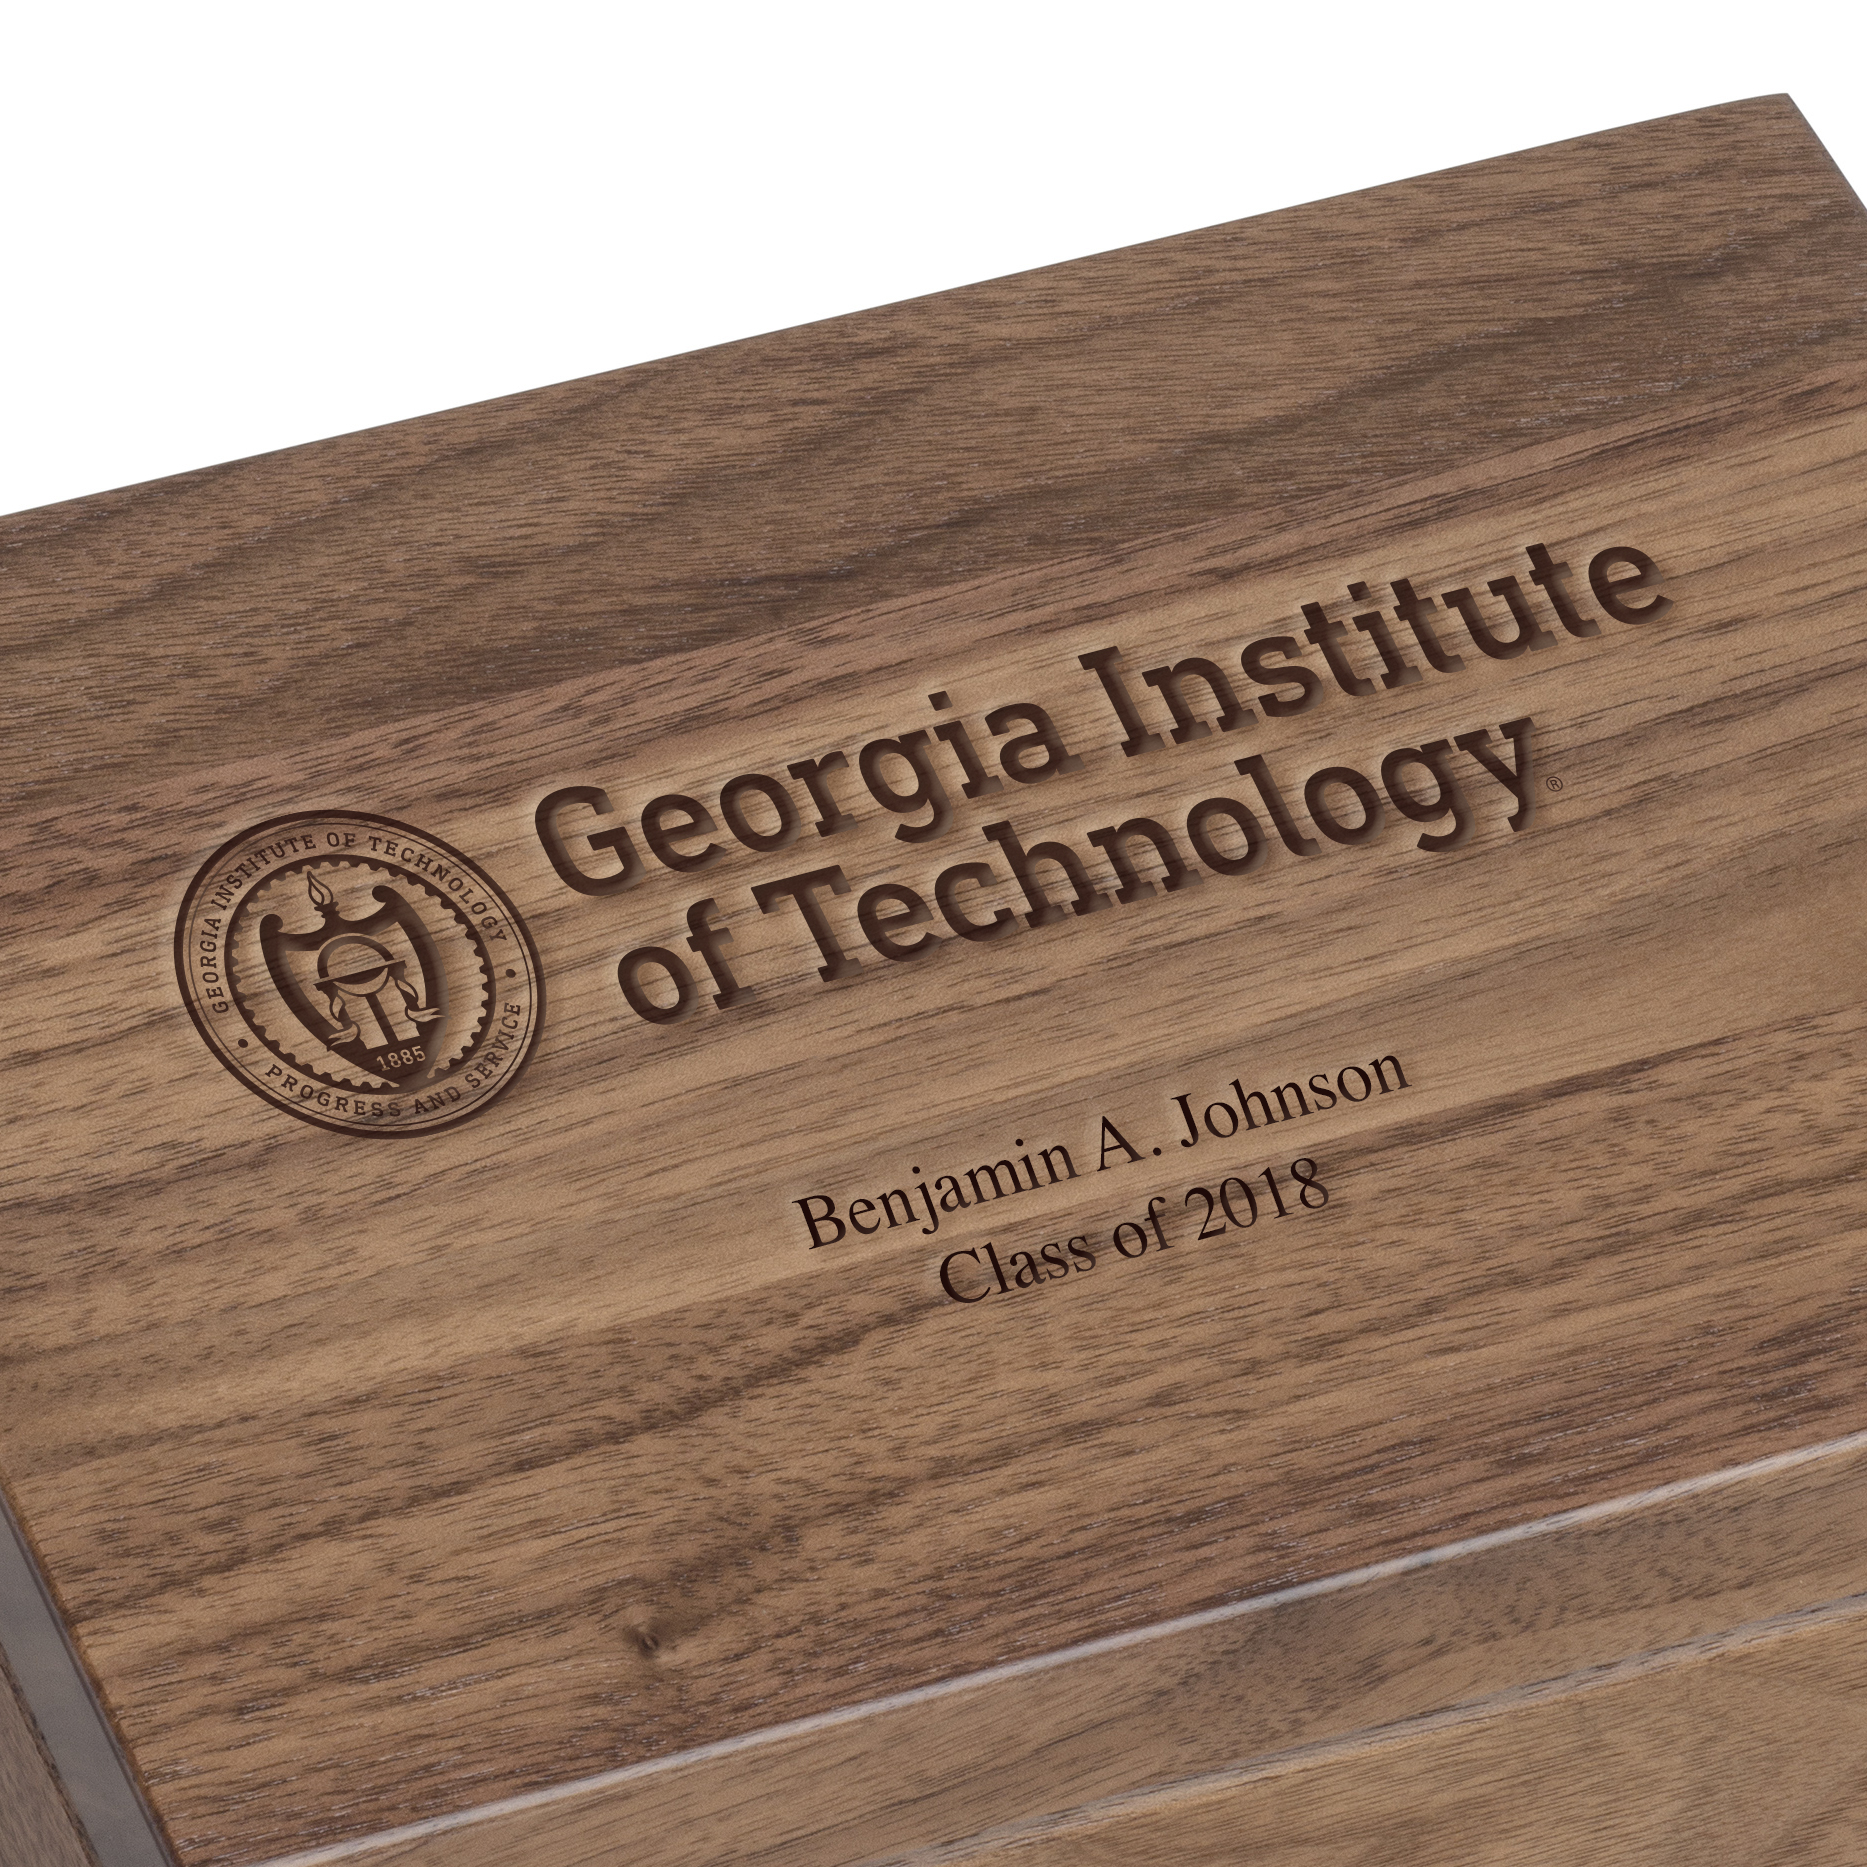 Georgia Tech Solid Walnut Desk Box - Image 2